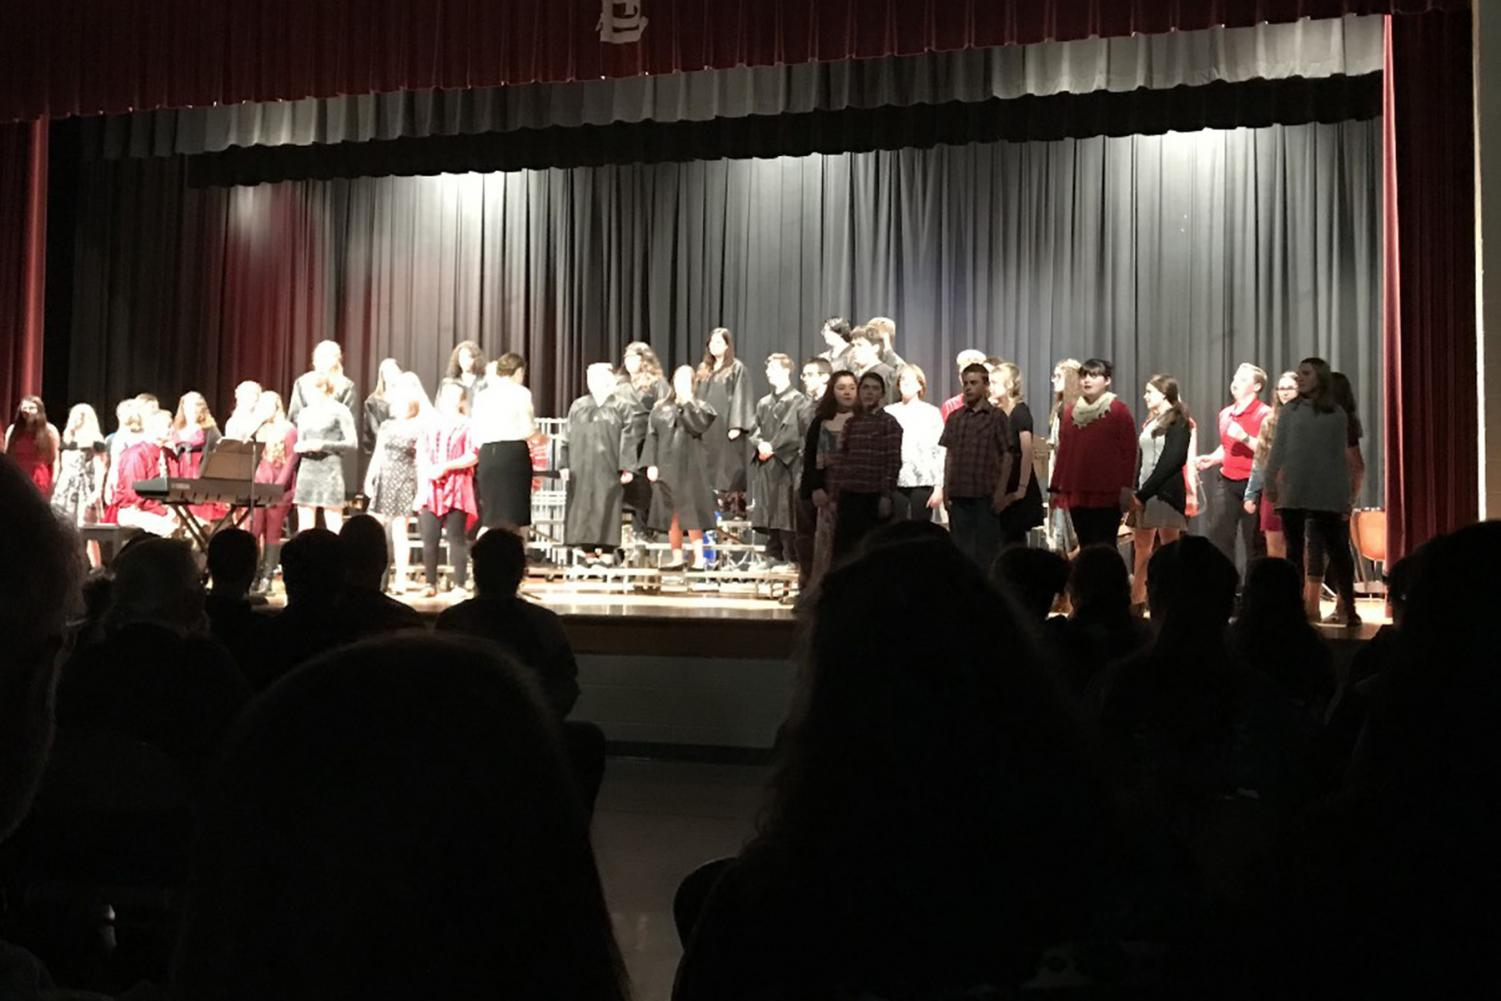 The St. Louis High School Choir performs alongside the middle school choir.